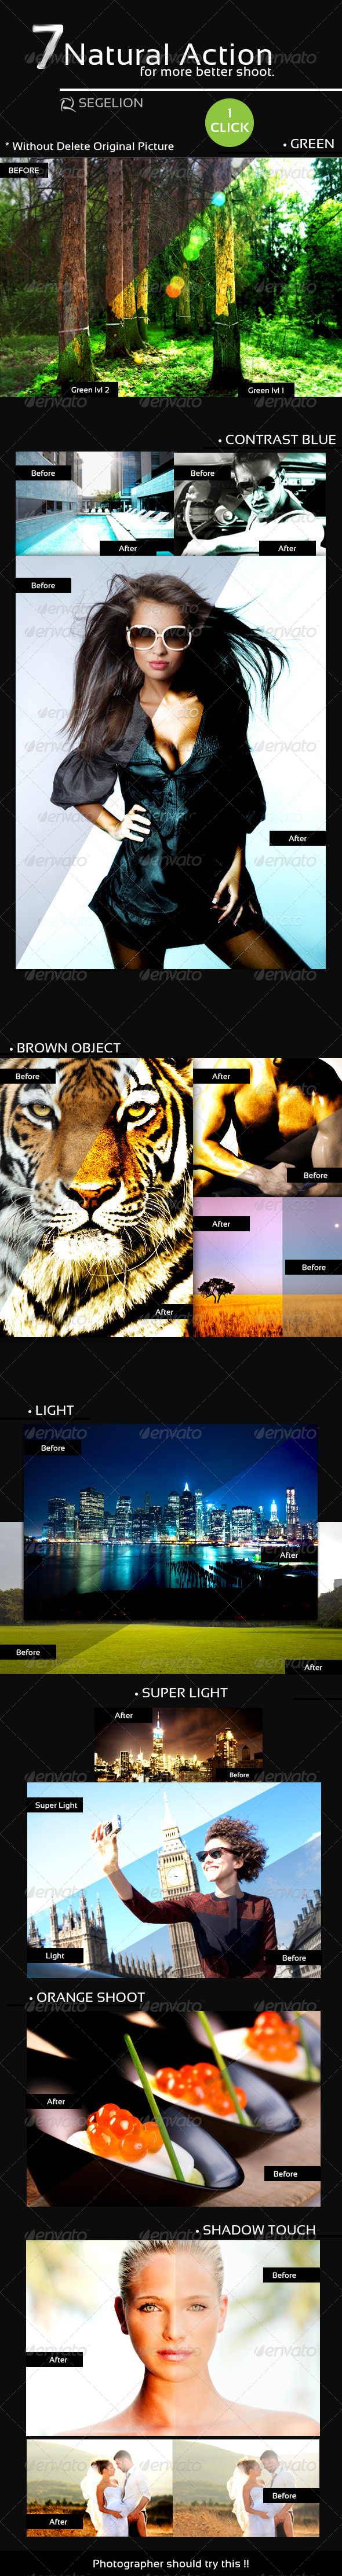 GraphicRiver 7 Natural Action 5723182